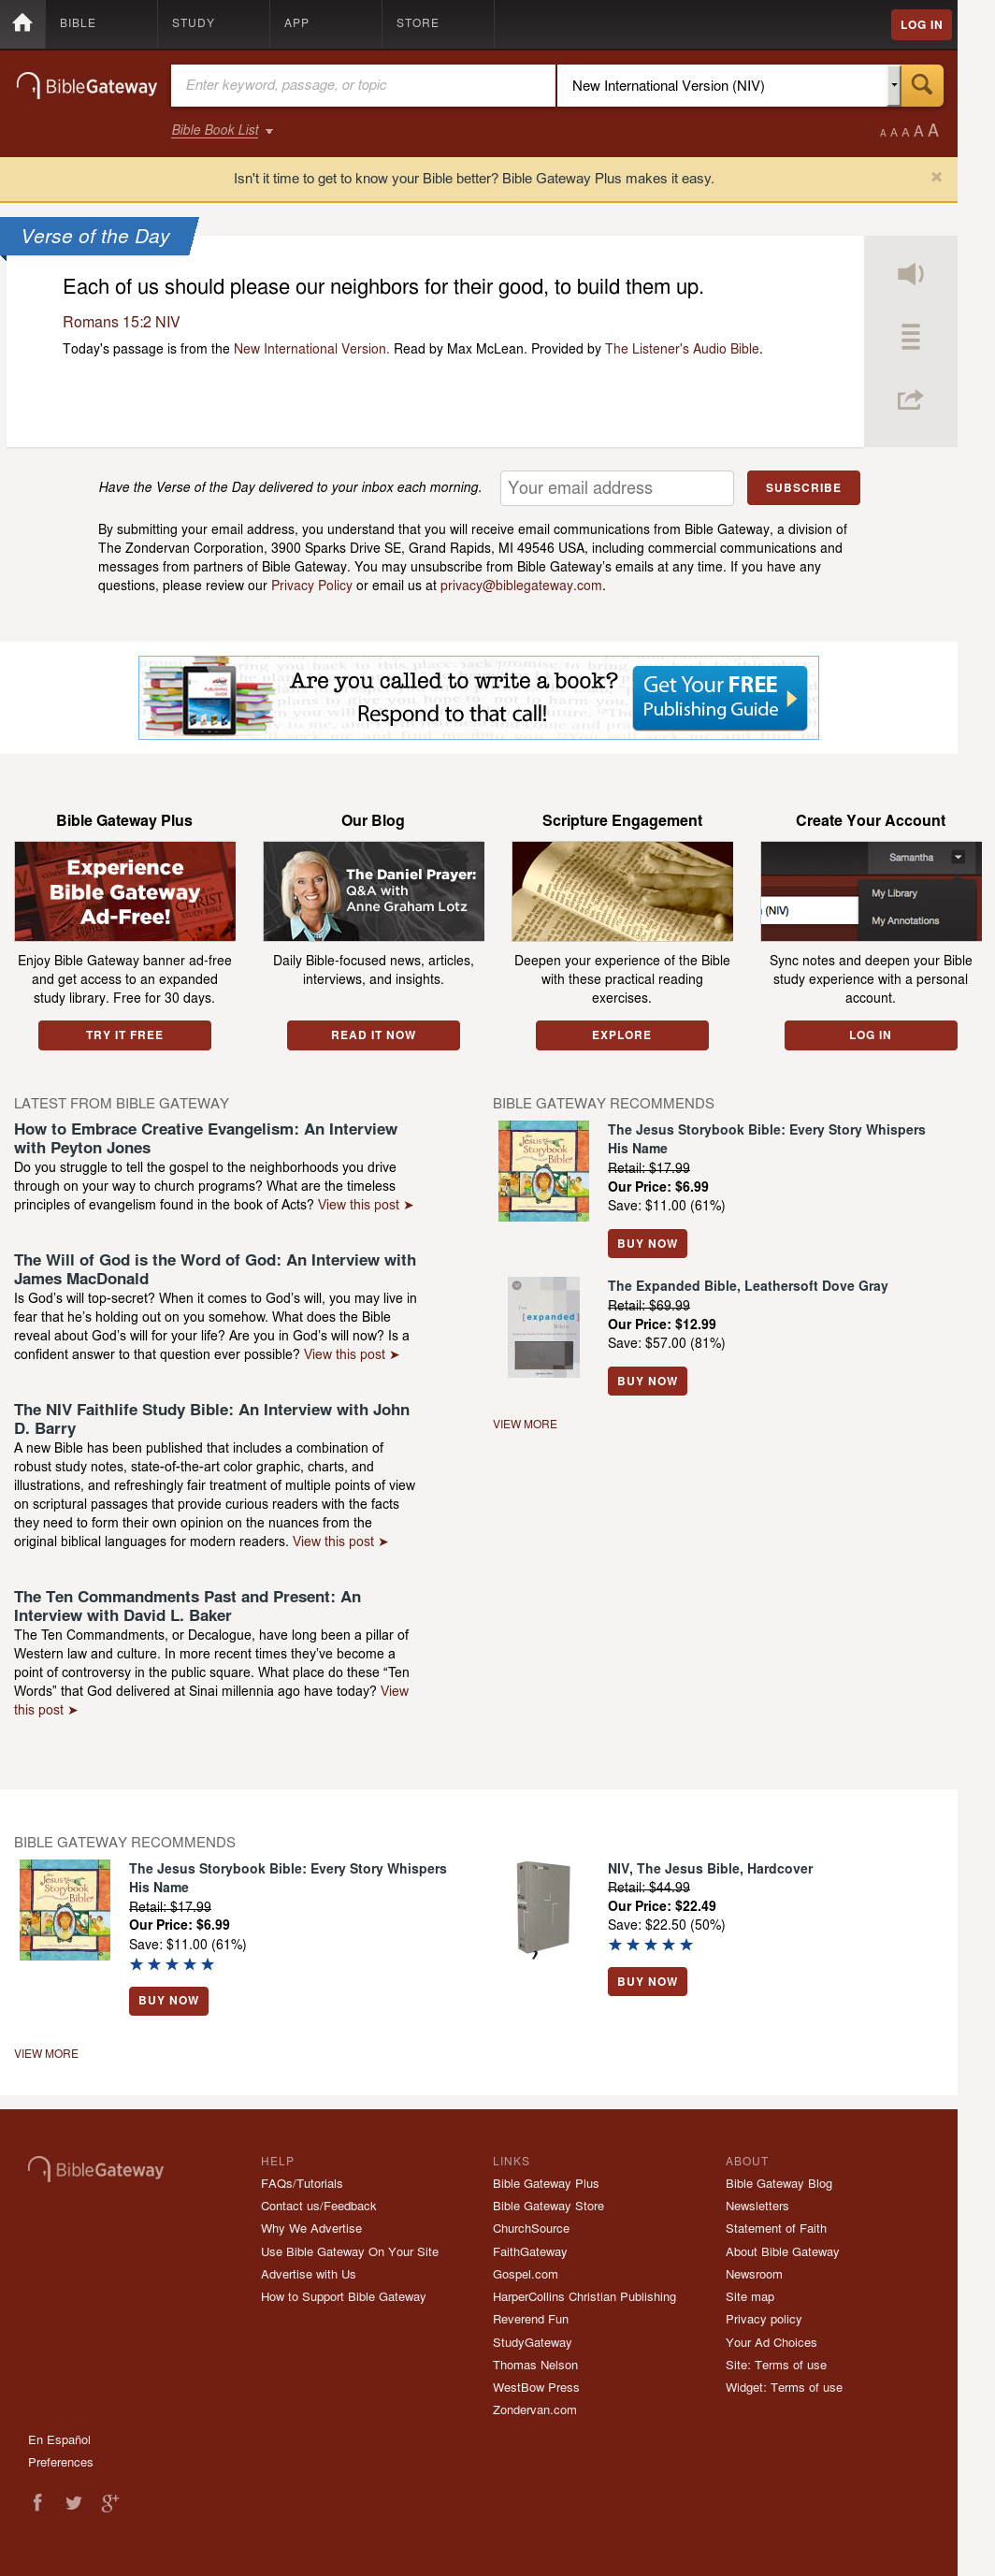 BibleGateway Competitors, Revenue and Employees - Owler